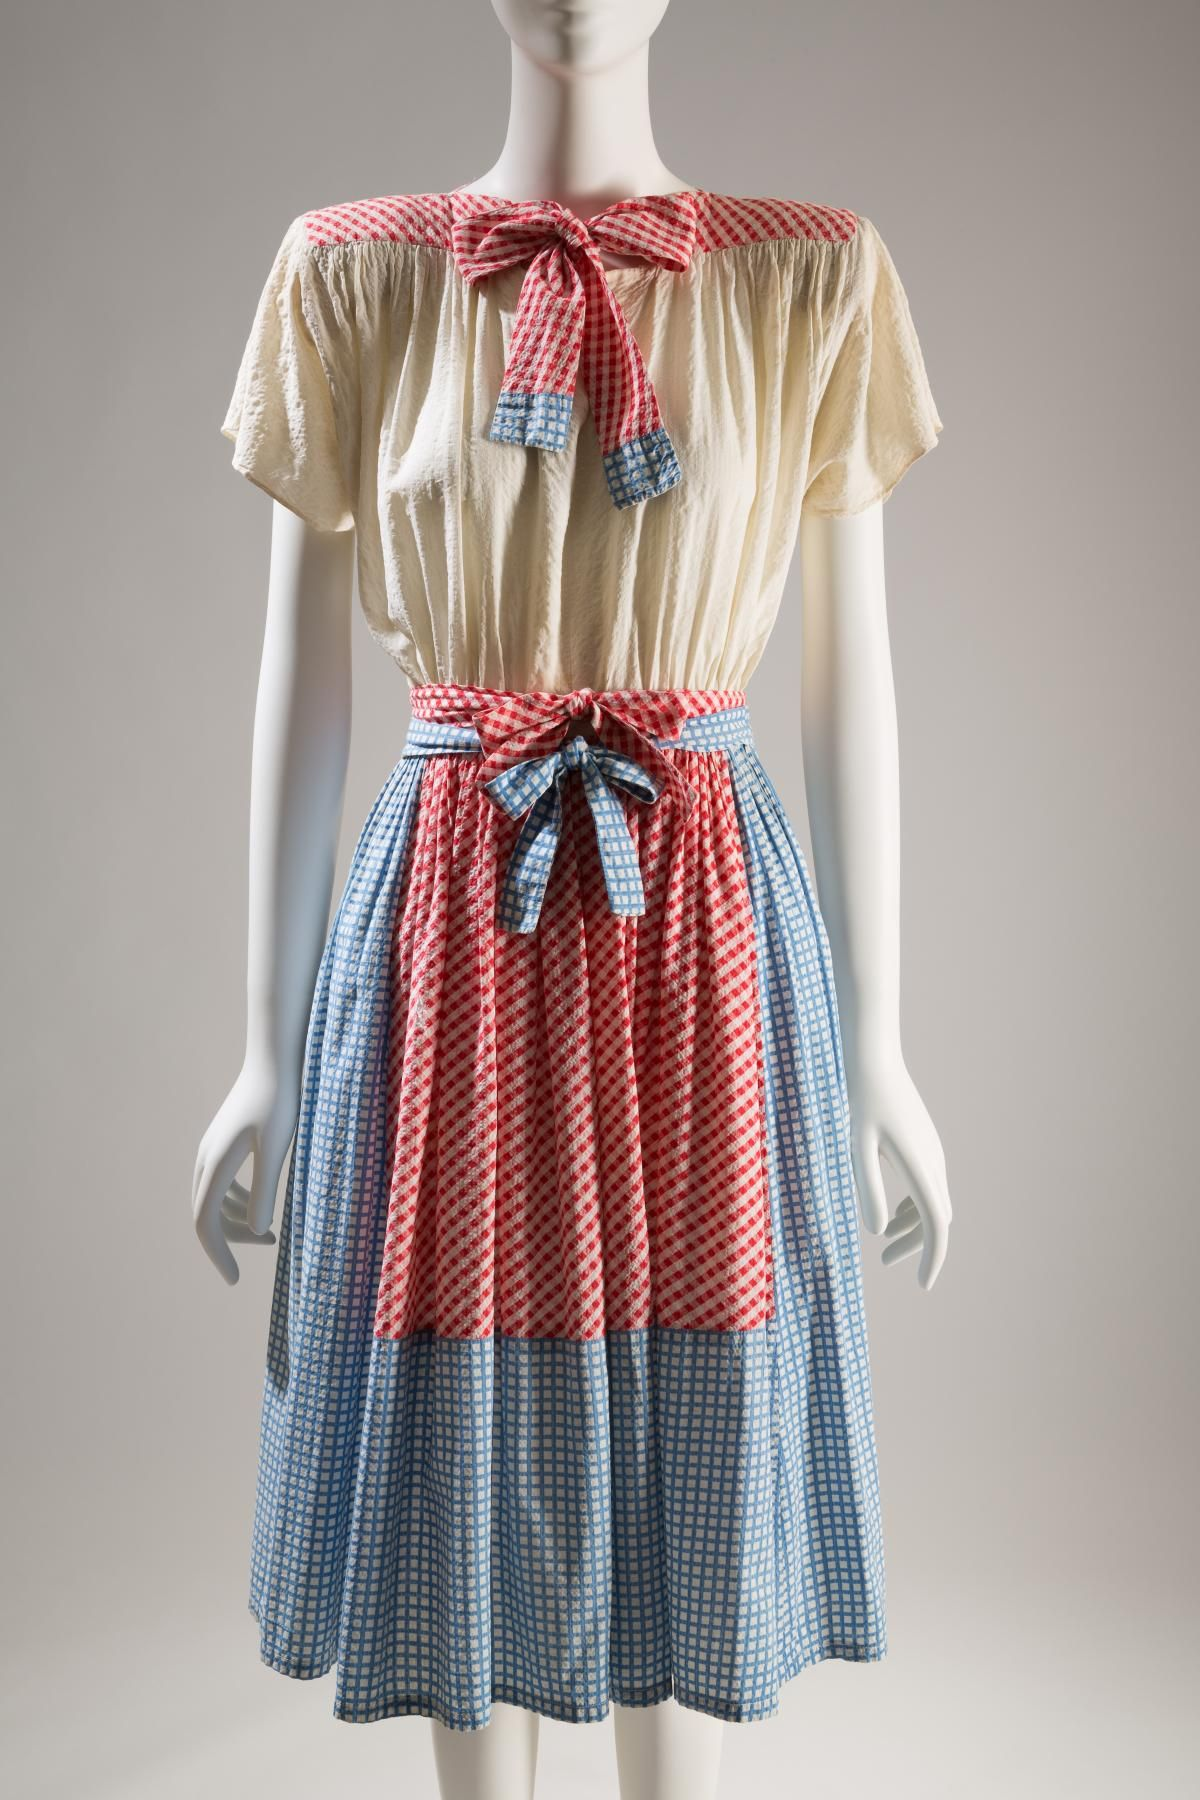 """The Wizard of Oz"": Adrian, dress, circa 1942, USA. Photo: The Museum at FIT."